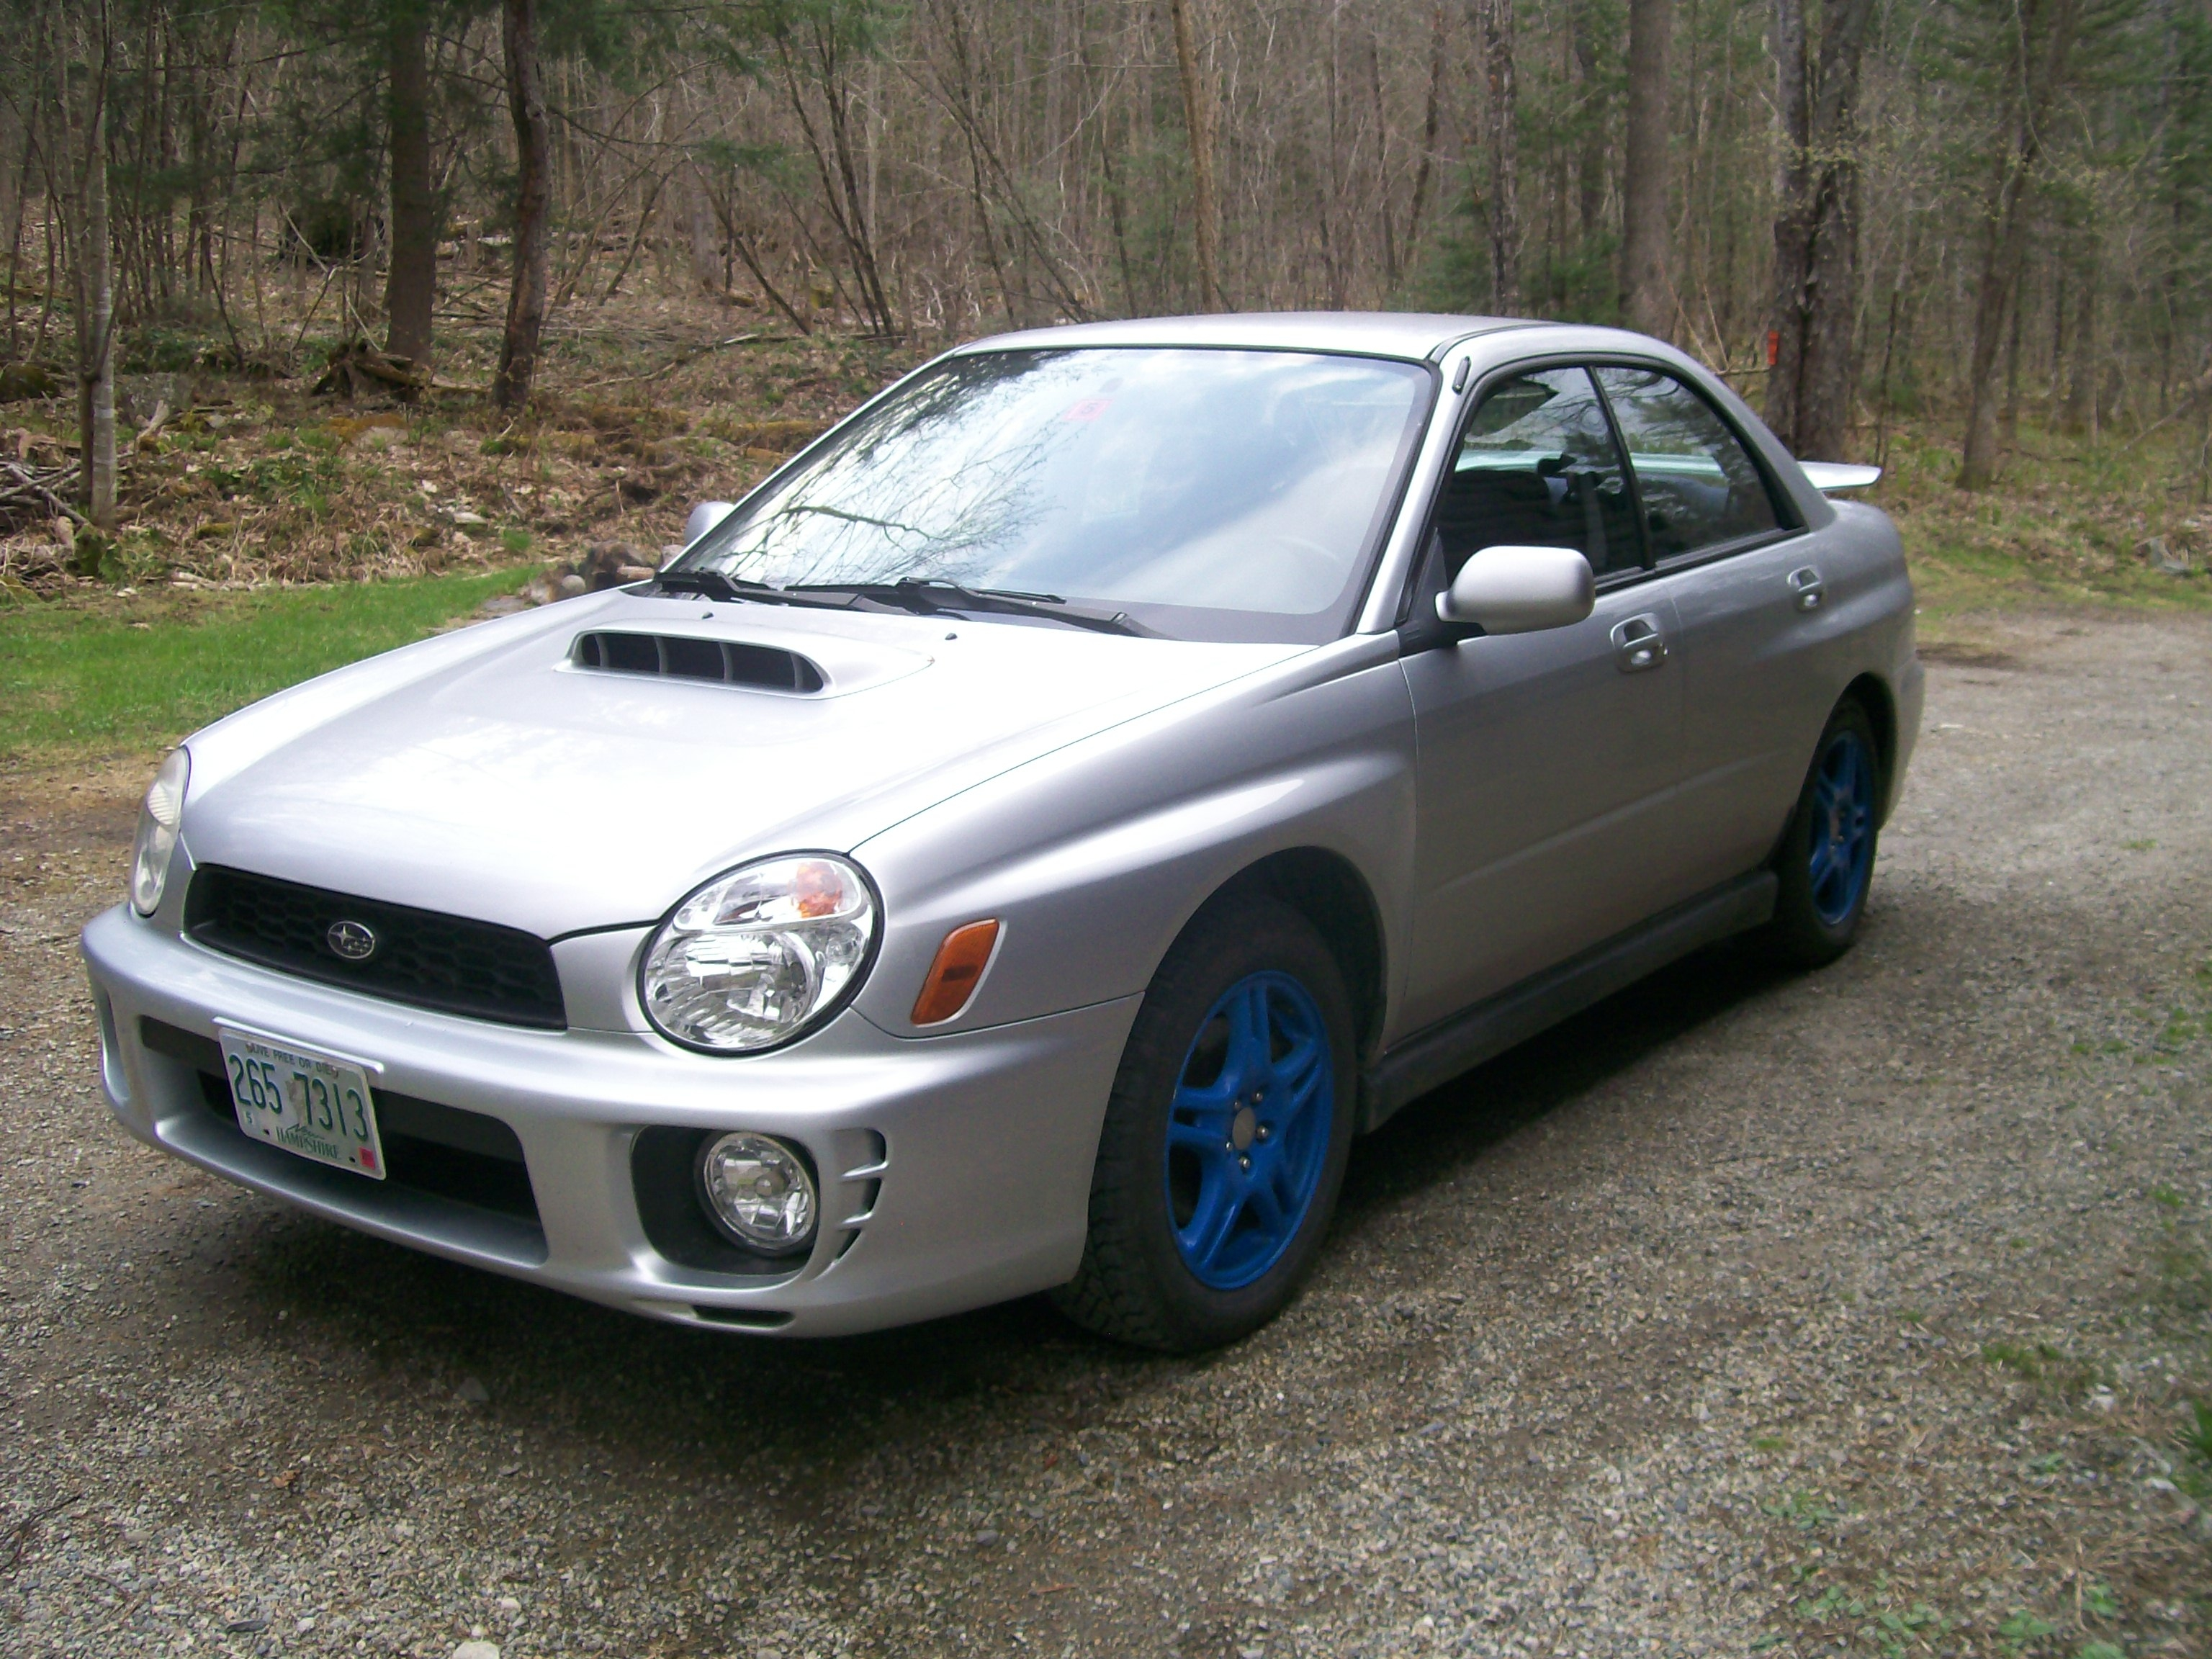 Another IrwinMobile 2003 Subaru Impreza post... - 15054034